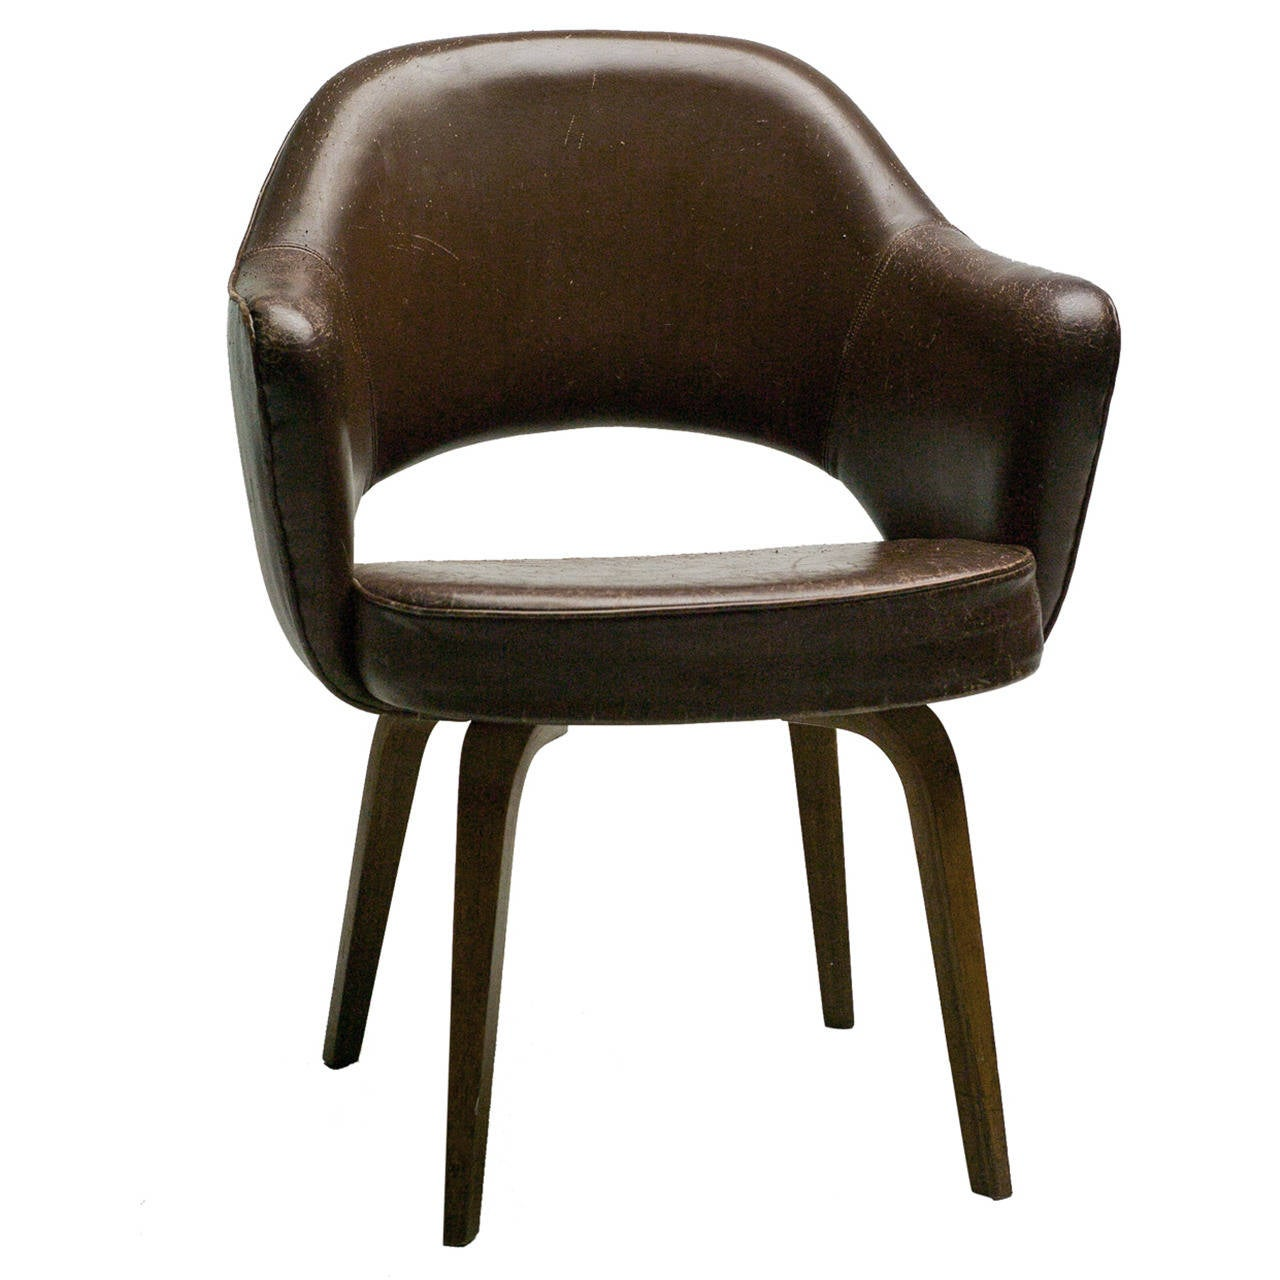 Executive Armchair In Leather By Eero Saarinen For Knoll